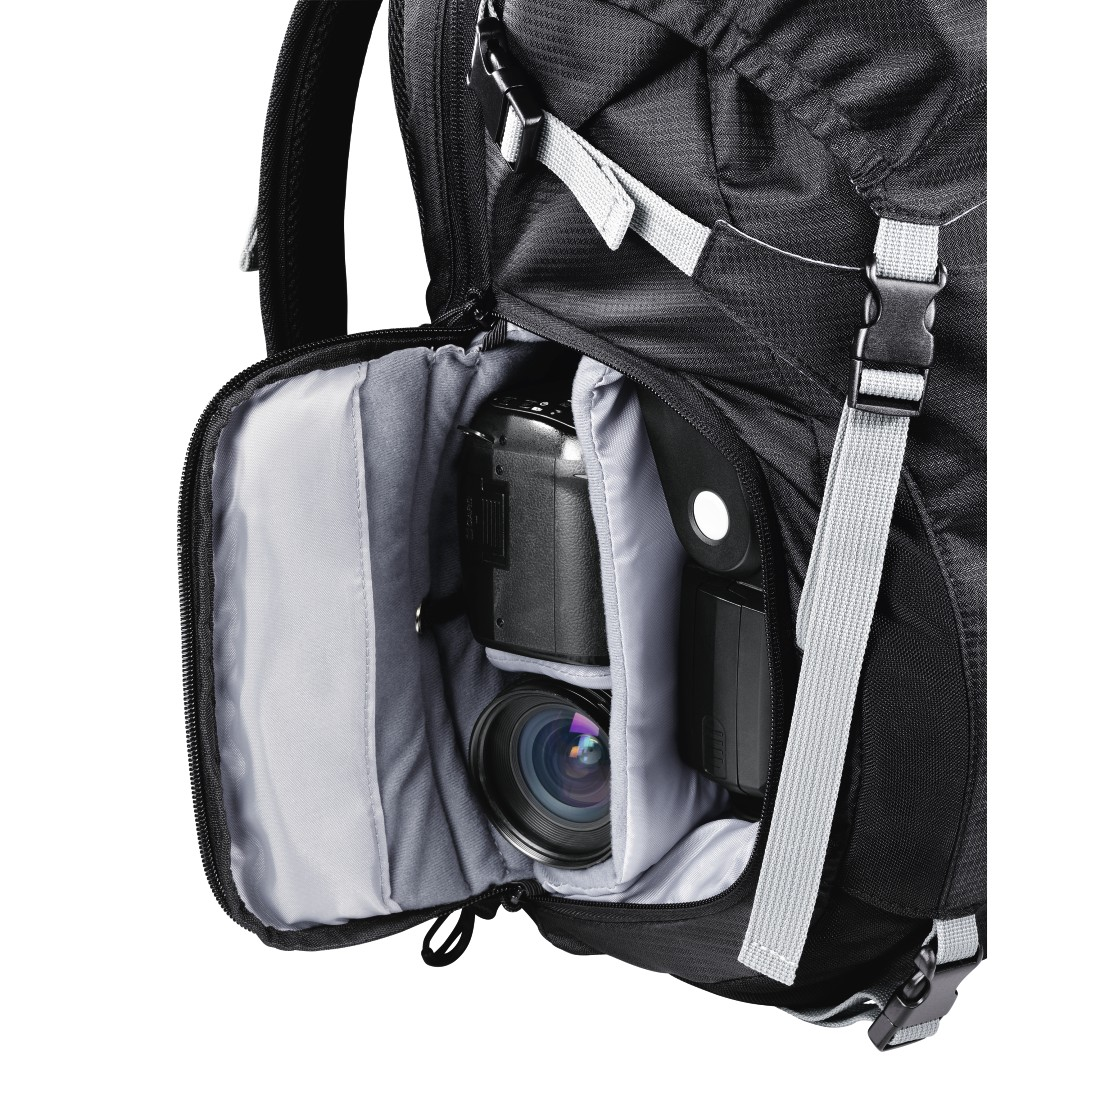 awx8 High-Res Appliance 8 - Hama, Trekkingtour Camera Backpack, 140, black